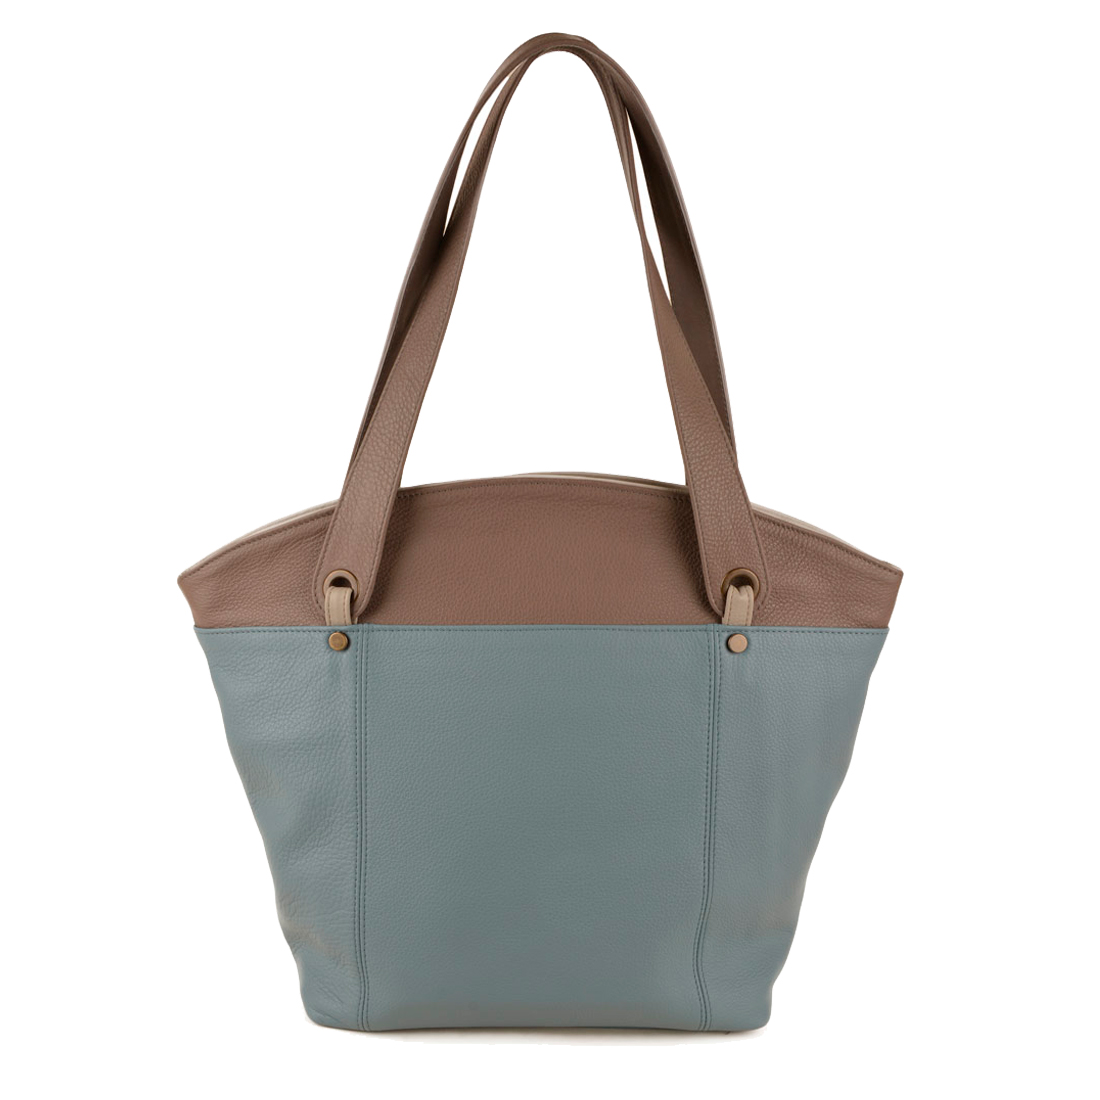 Kimberley Niagra Leather Tote